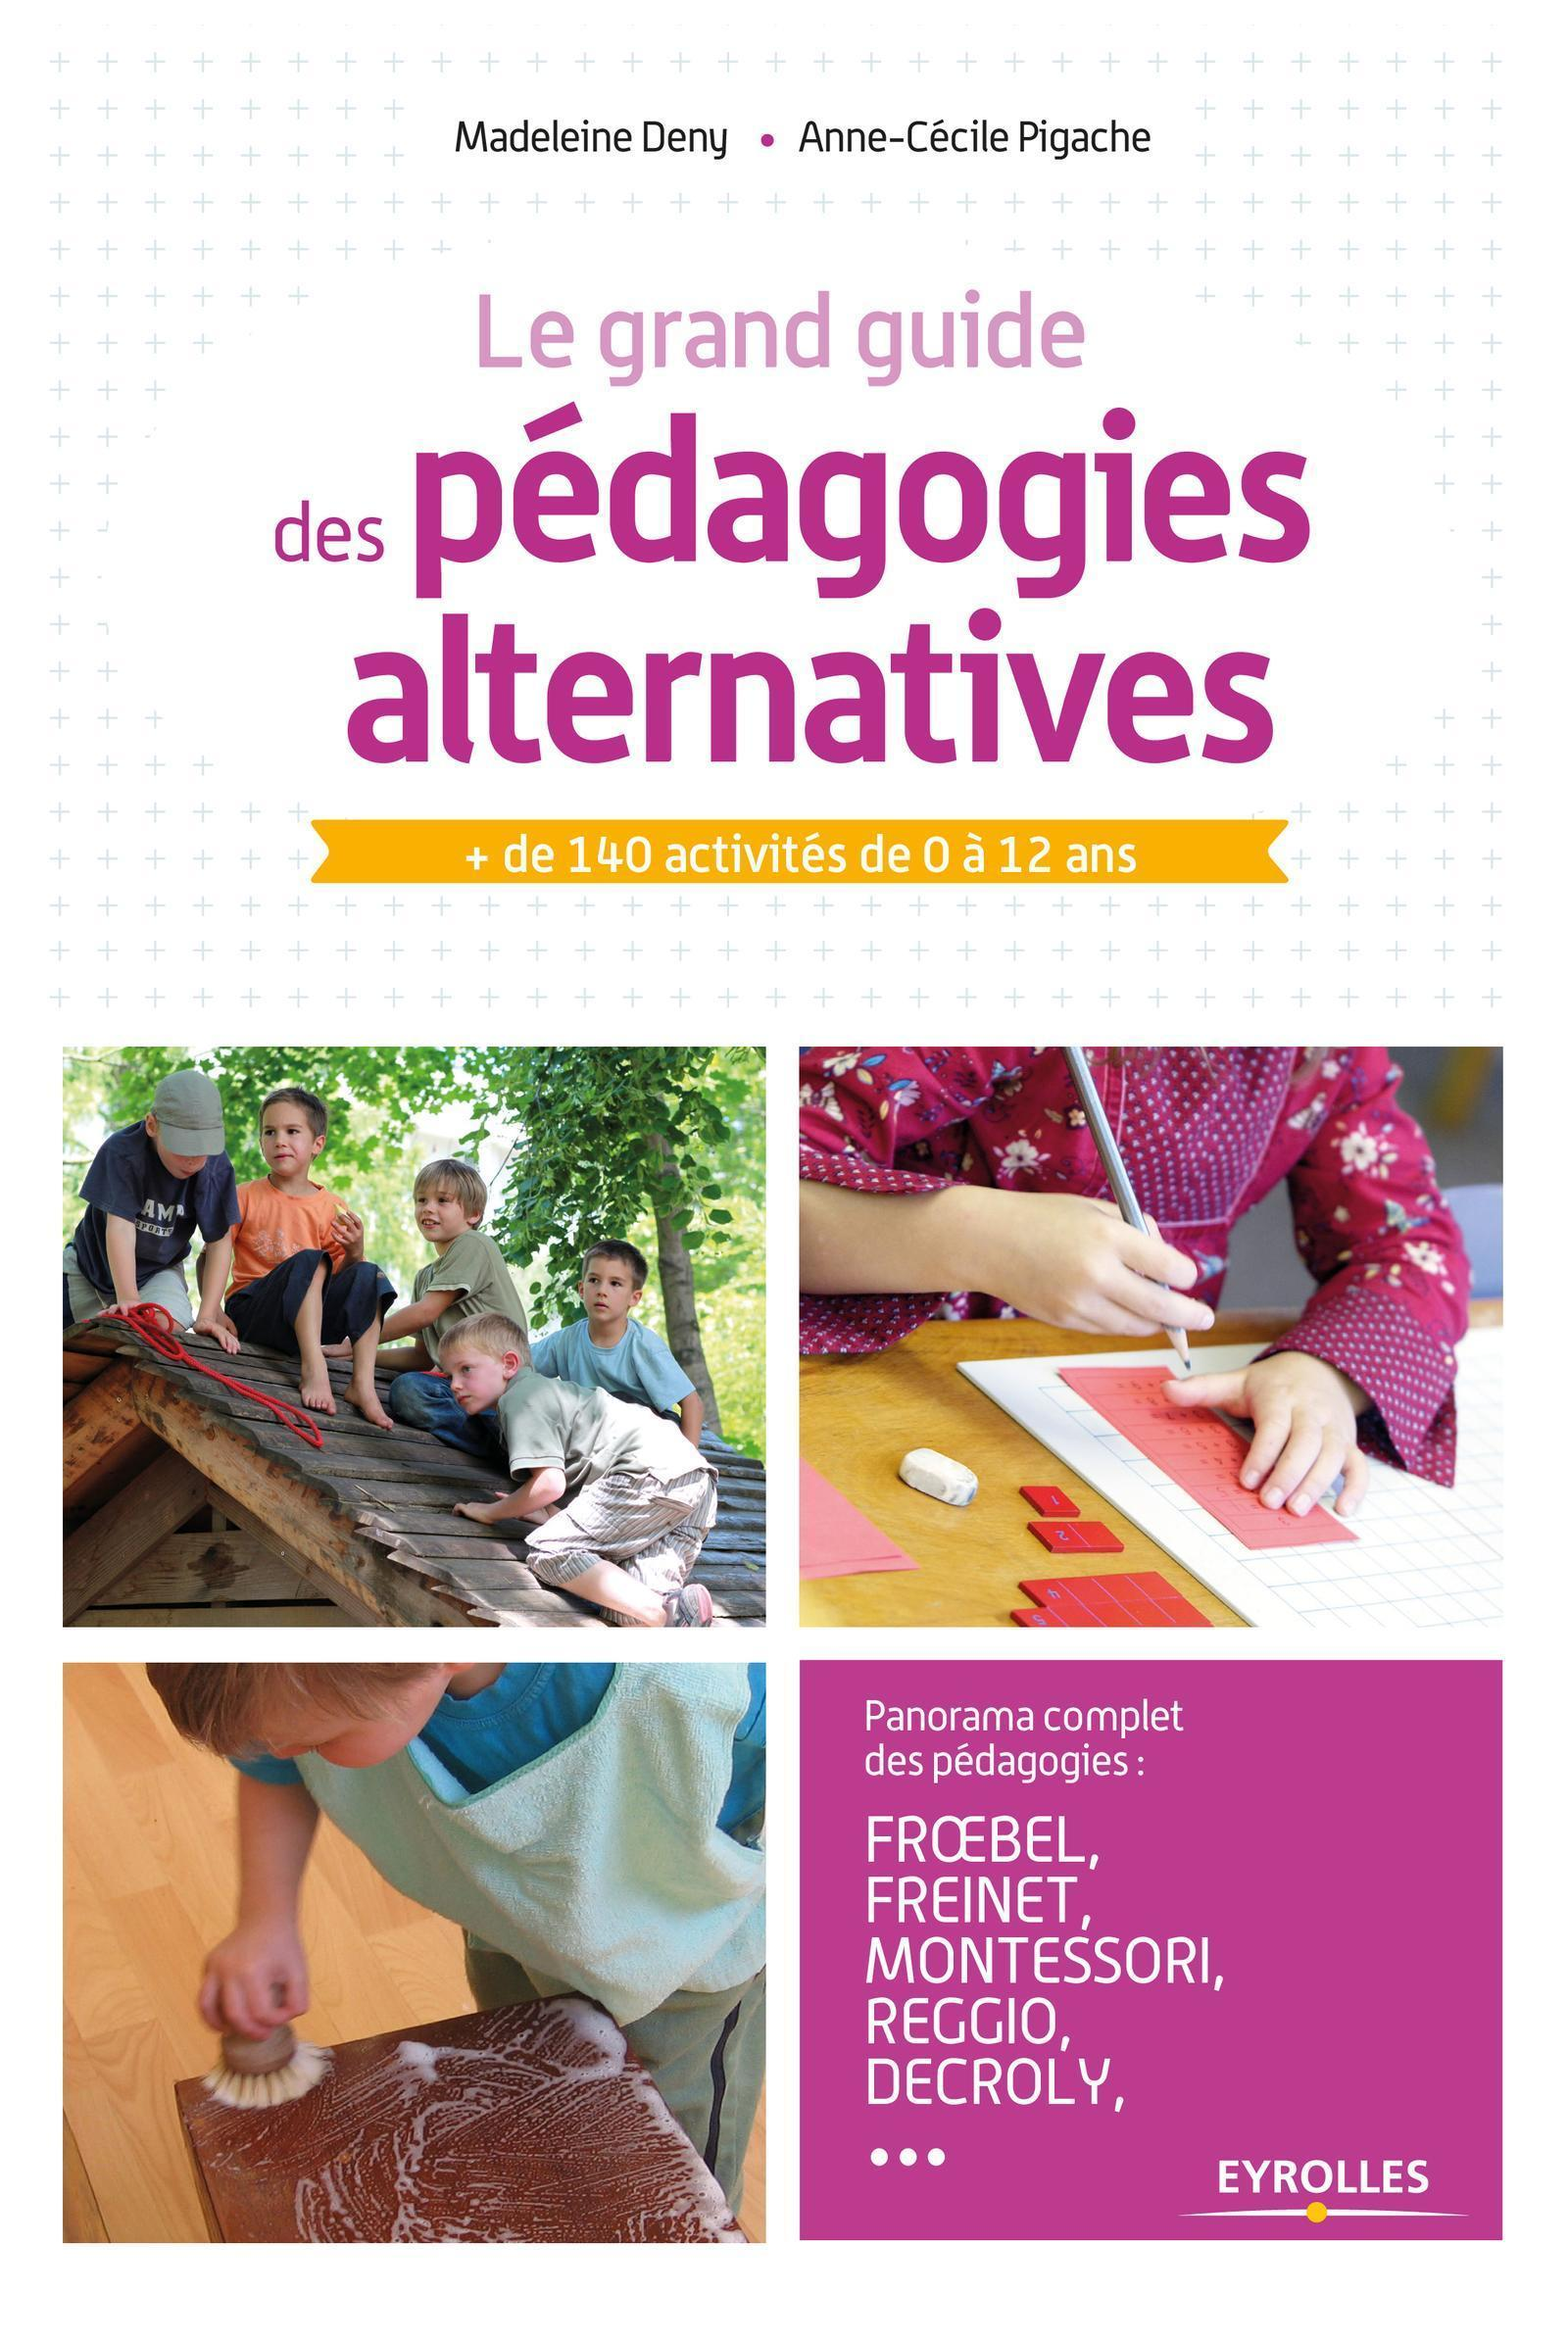 LE GRAND GUIDE DES PEDAGOGIES ALTERNATIVES - PLUS DE 140 ACTIVITES DE 0 A 12 ANS